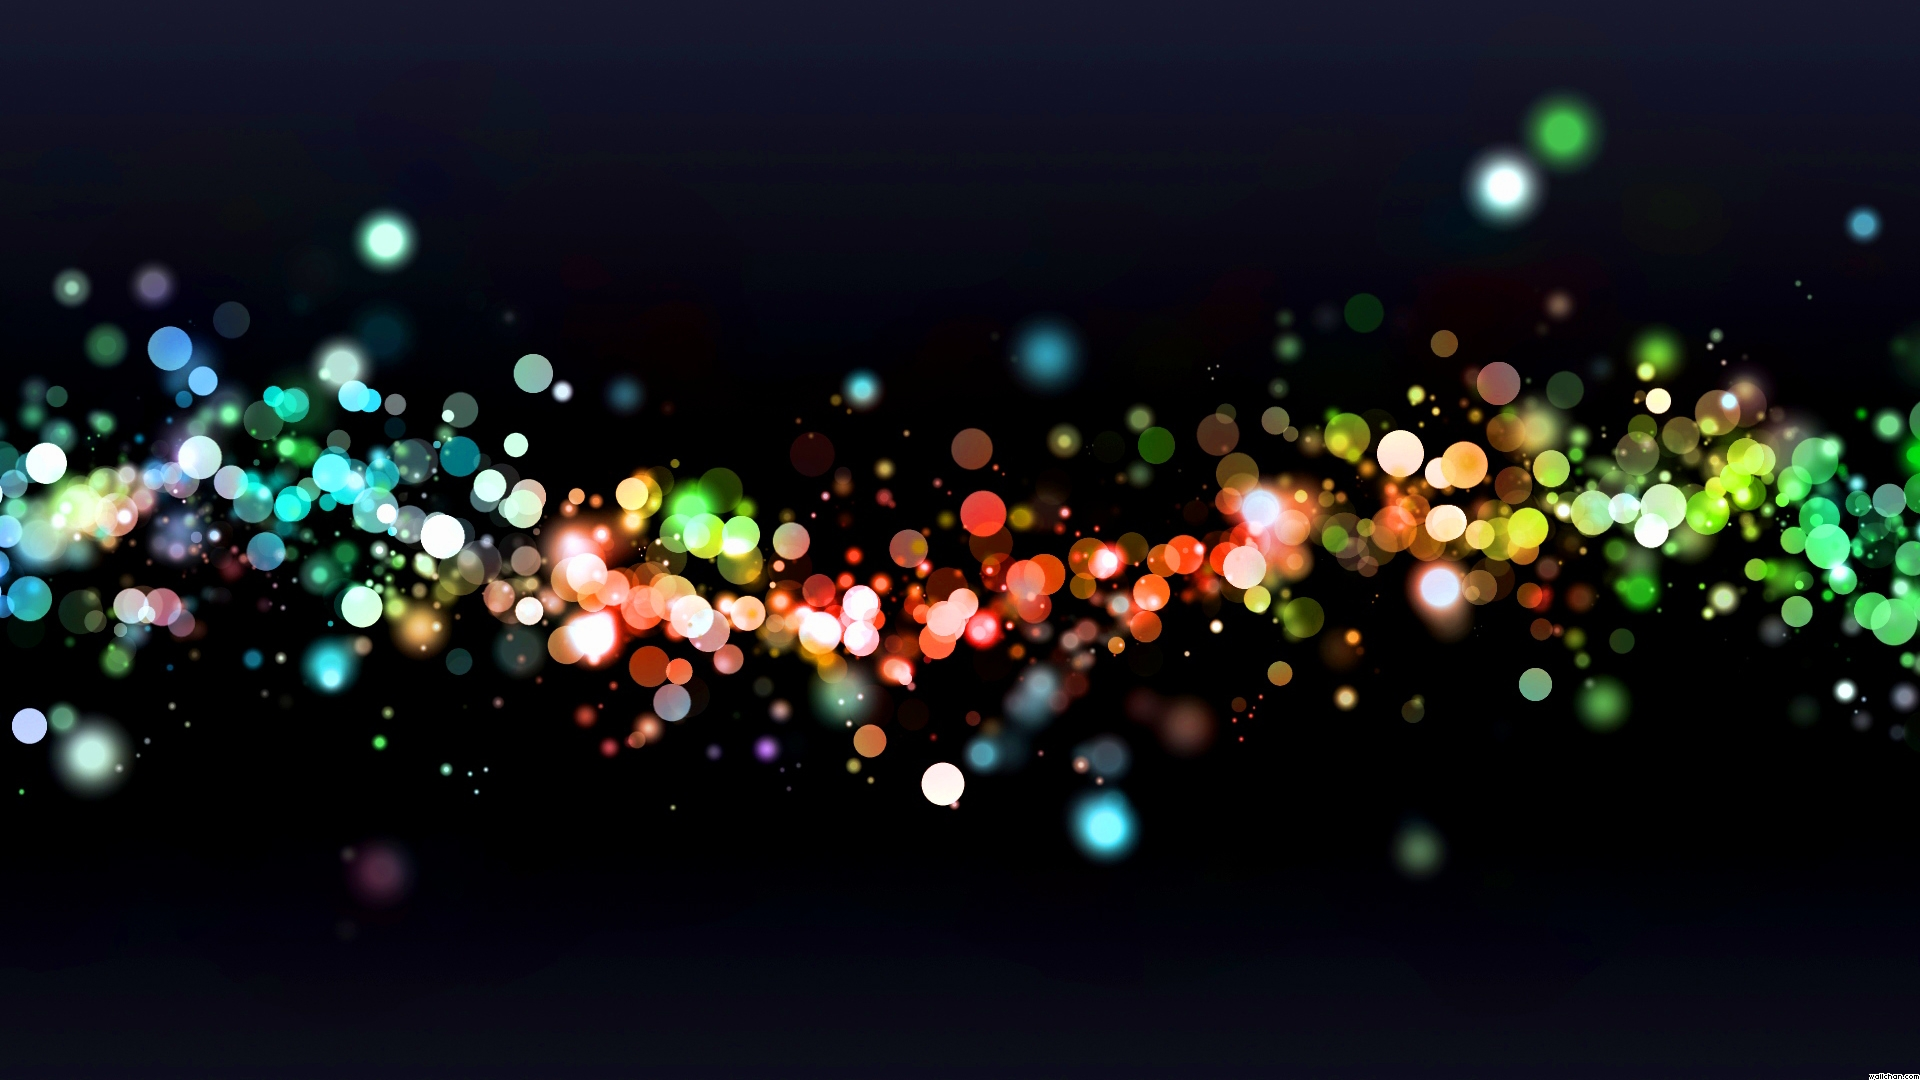 Bokeh Lights Res: 1920x1080 HD / Size:738kb. Views: 187425. More Digital Art (general) wallpapers